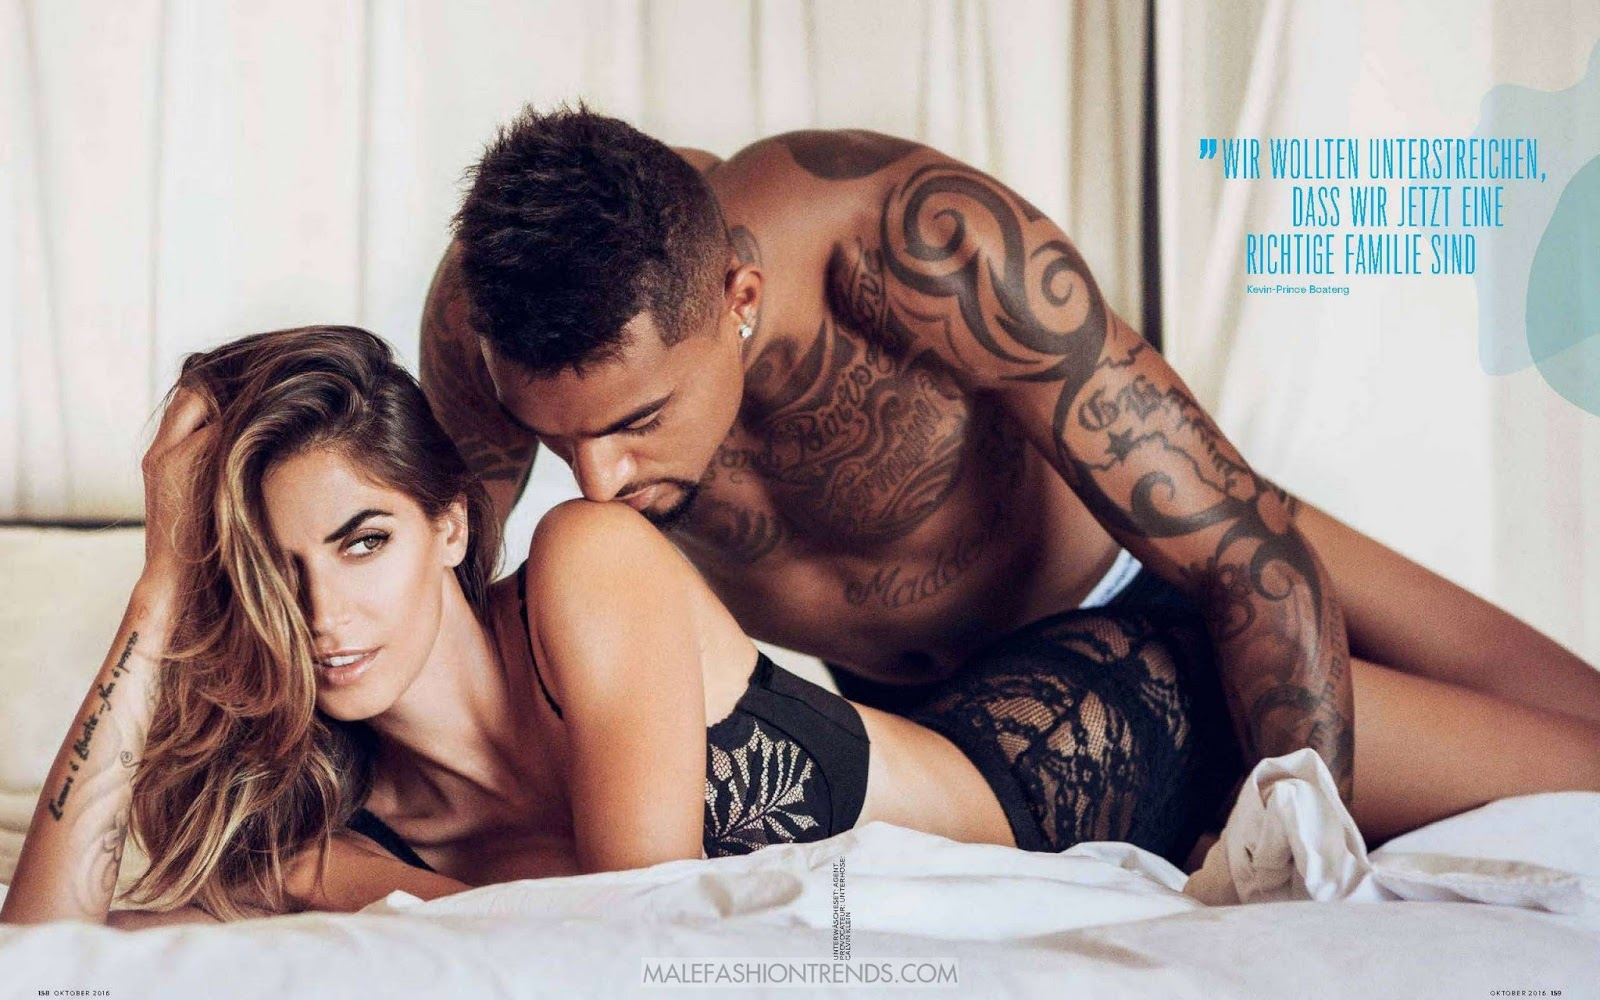 melissa-satta-kevin-prince-boateng-gq-germany-cover-02